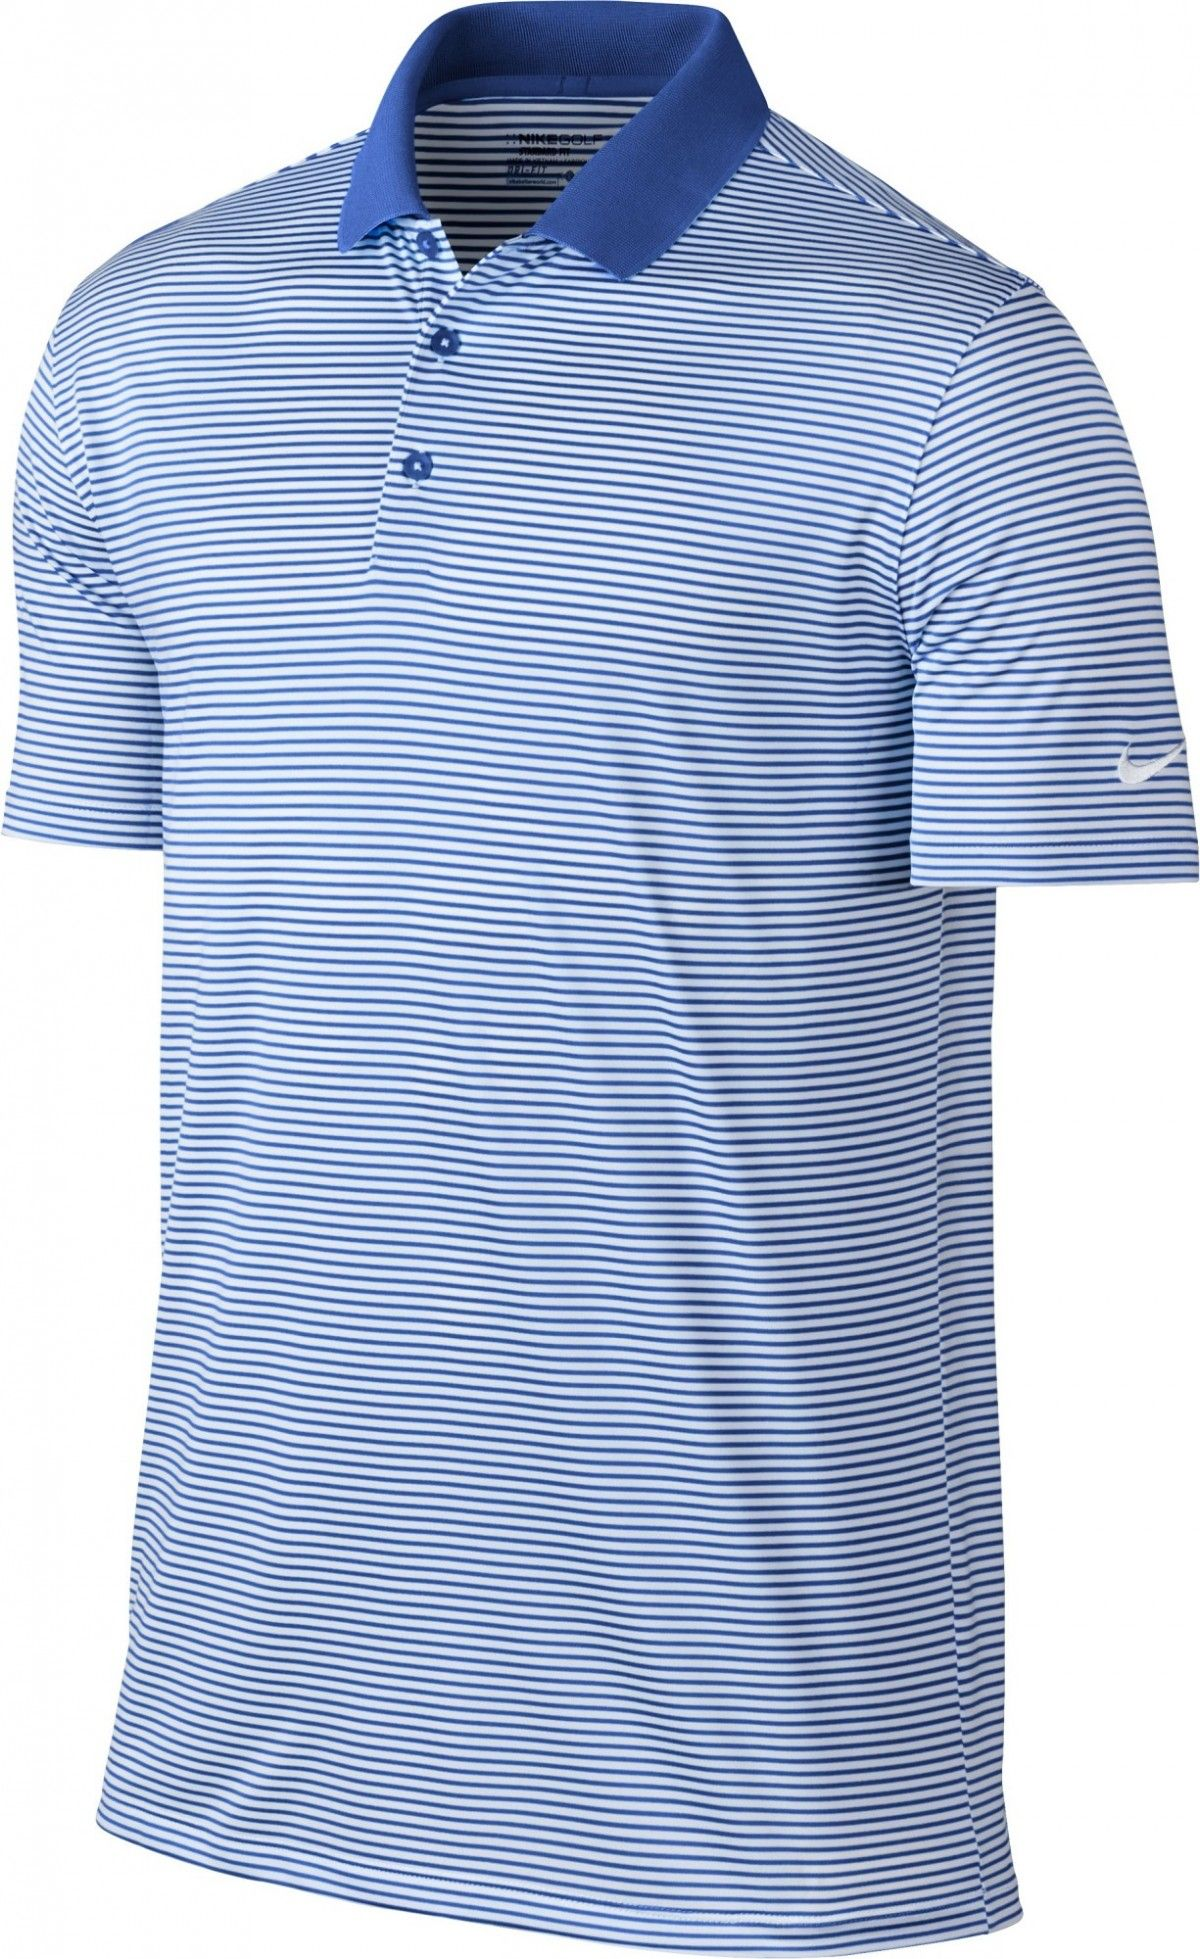 separation shoes 49d58 701ff NIKE Men s Dry Victory Stripe Polo, College Navy White, XXX-Large  Sporting  a ribbed collar that s designed to prevent Curling, men s Nike dry victory  golf ...